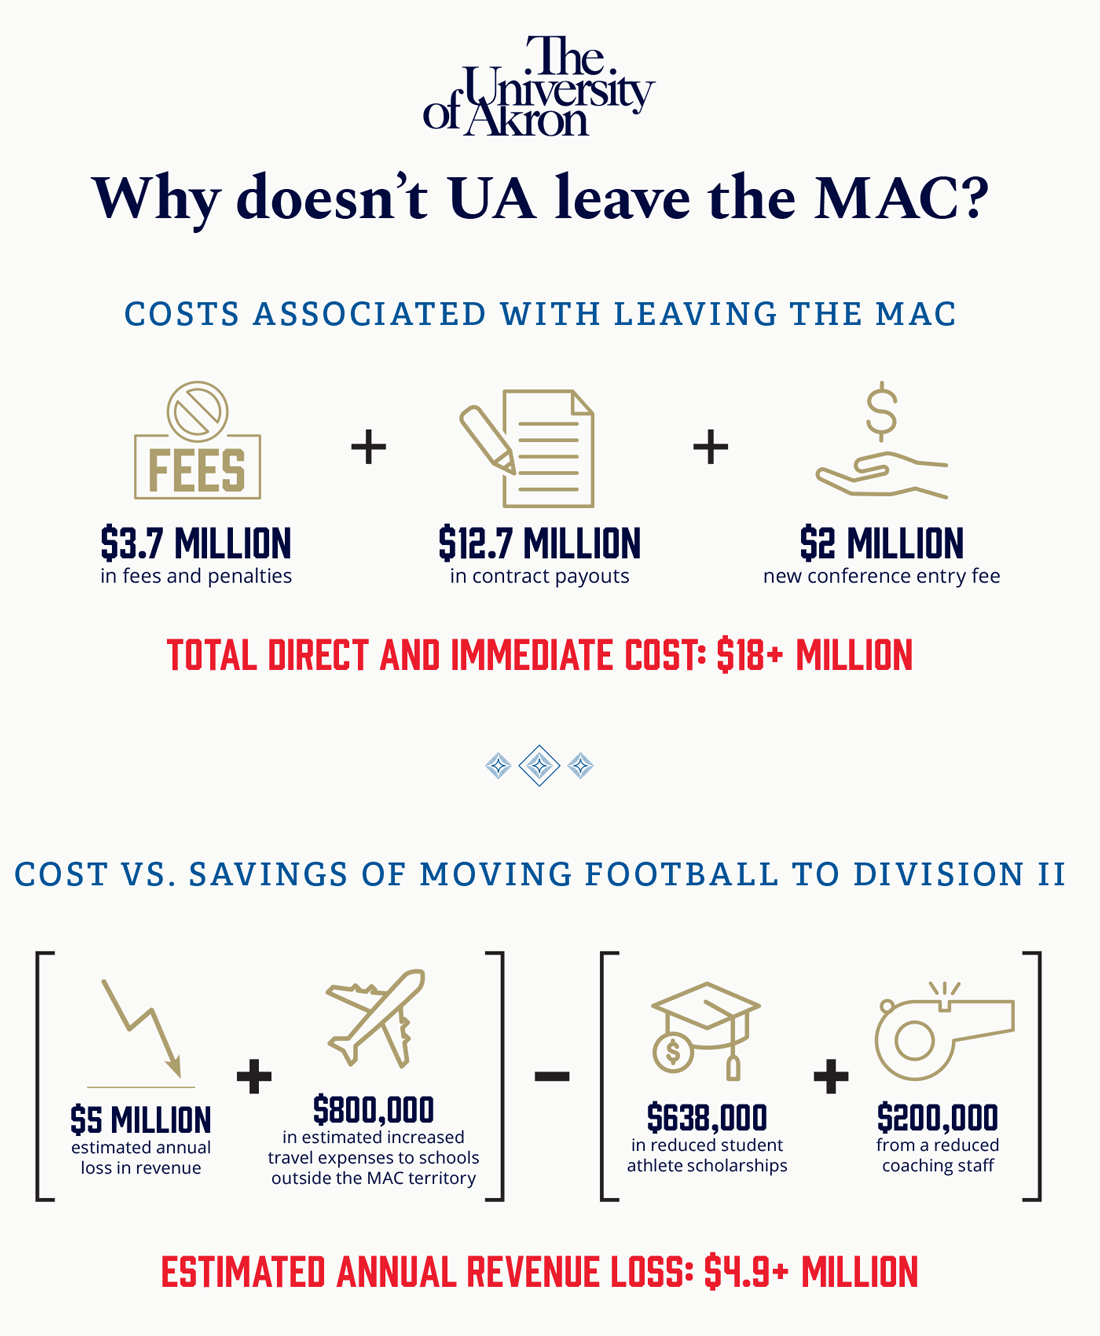 Infographic showing that leaving the MAC would cost $4.9 million